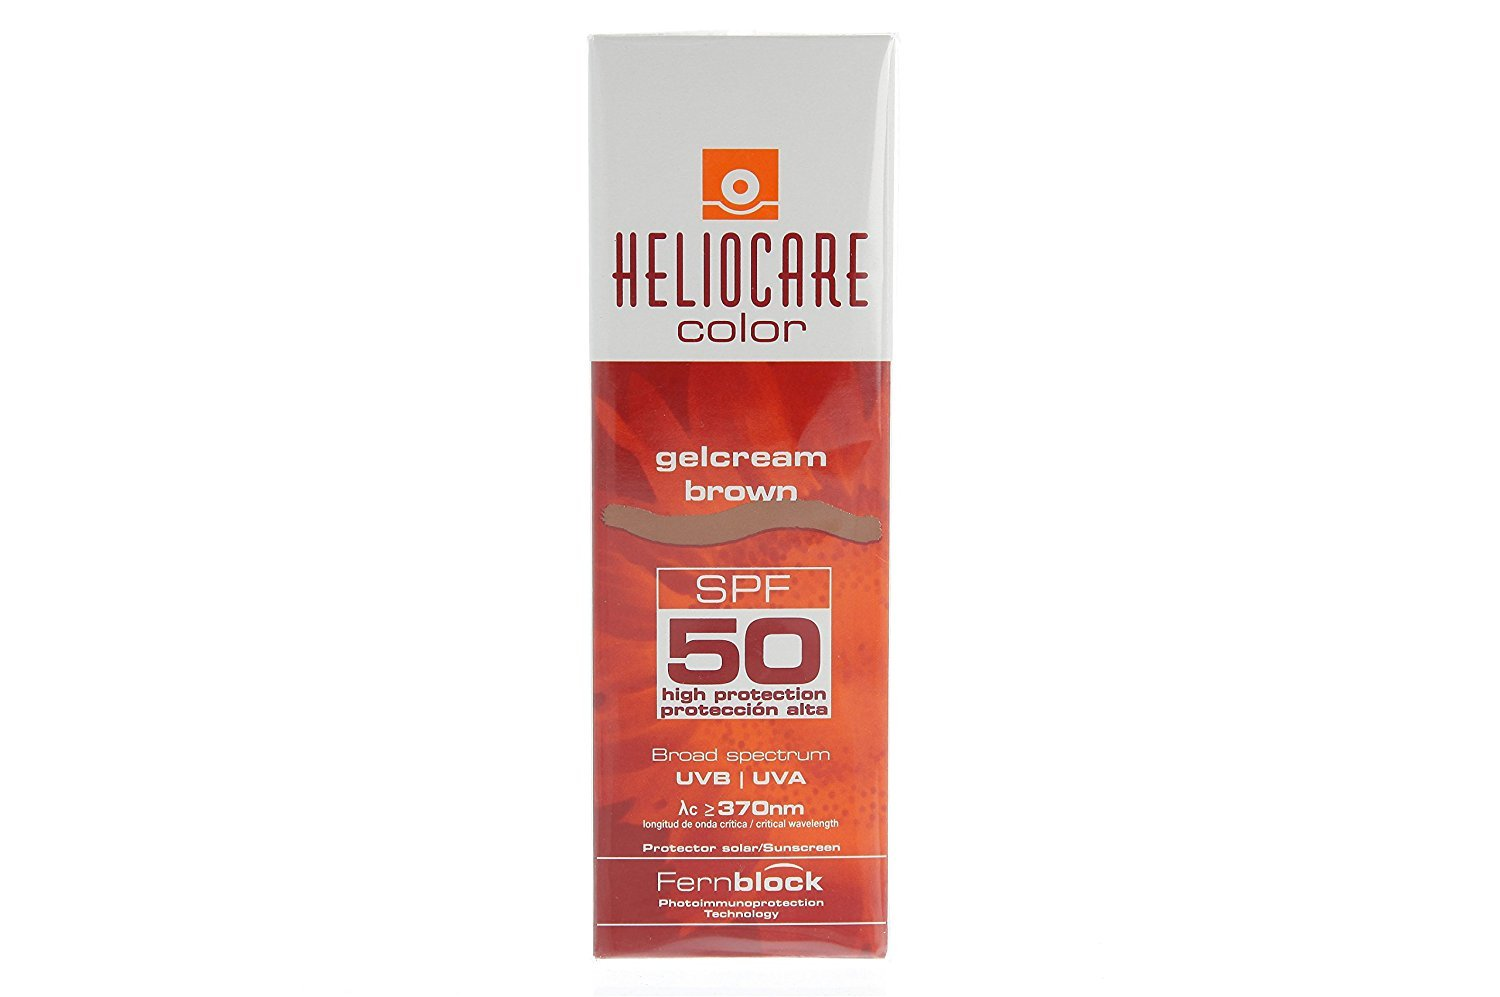 Heliocare Color gelcream Brown SPF50 50ml C.N.157143.4